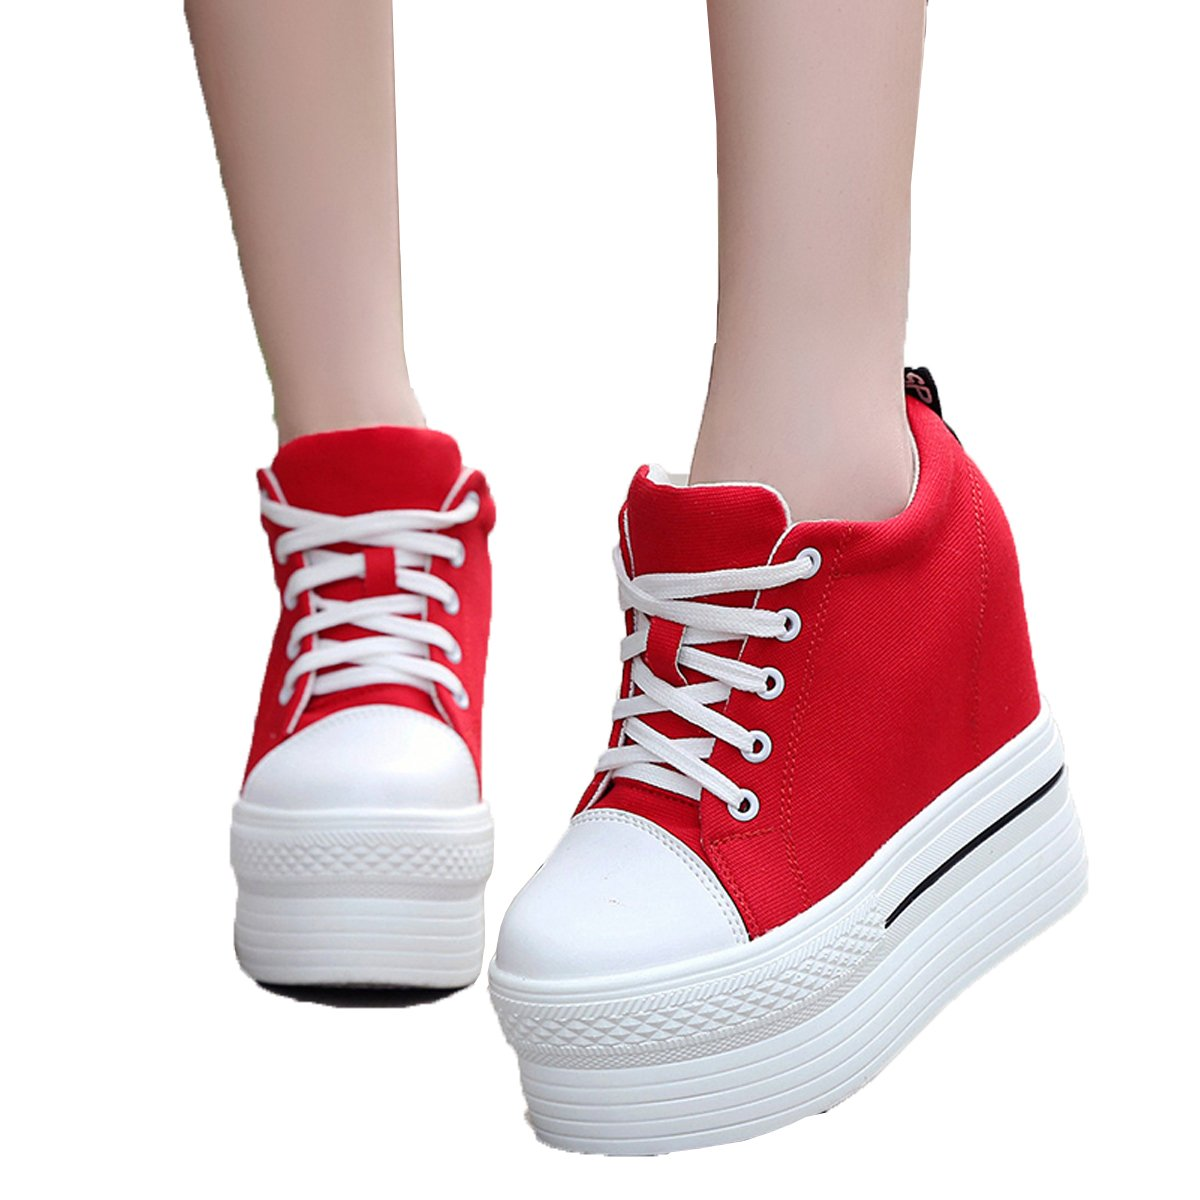 YC WELL Womens Wedge Platform Sneaker Flat Canvas Shoes Lace up Platform Sneakers B01L3JQGMM 5 B(M) US|Red